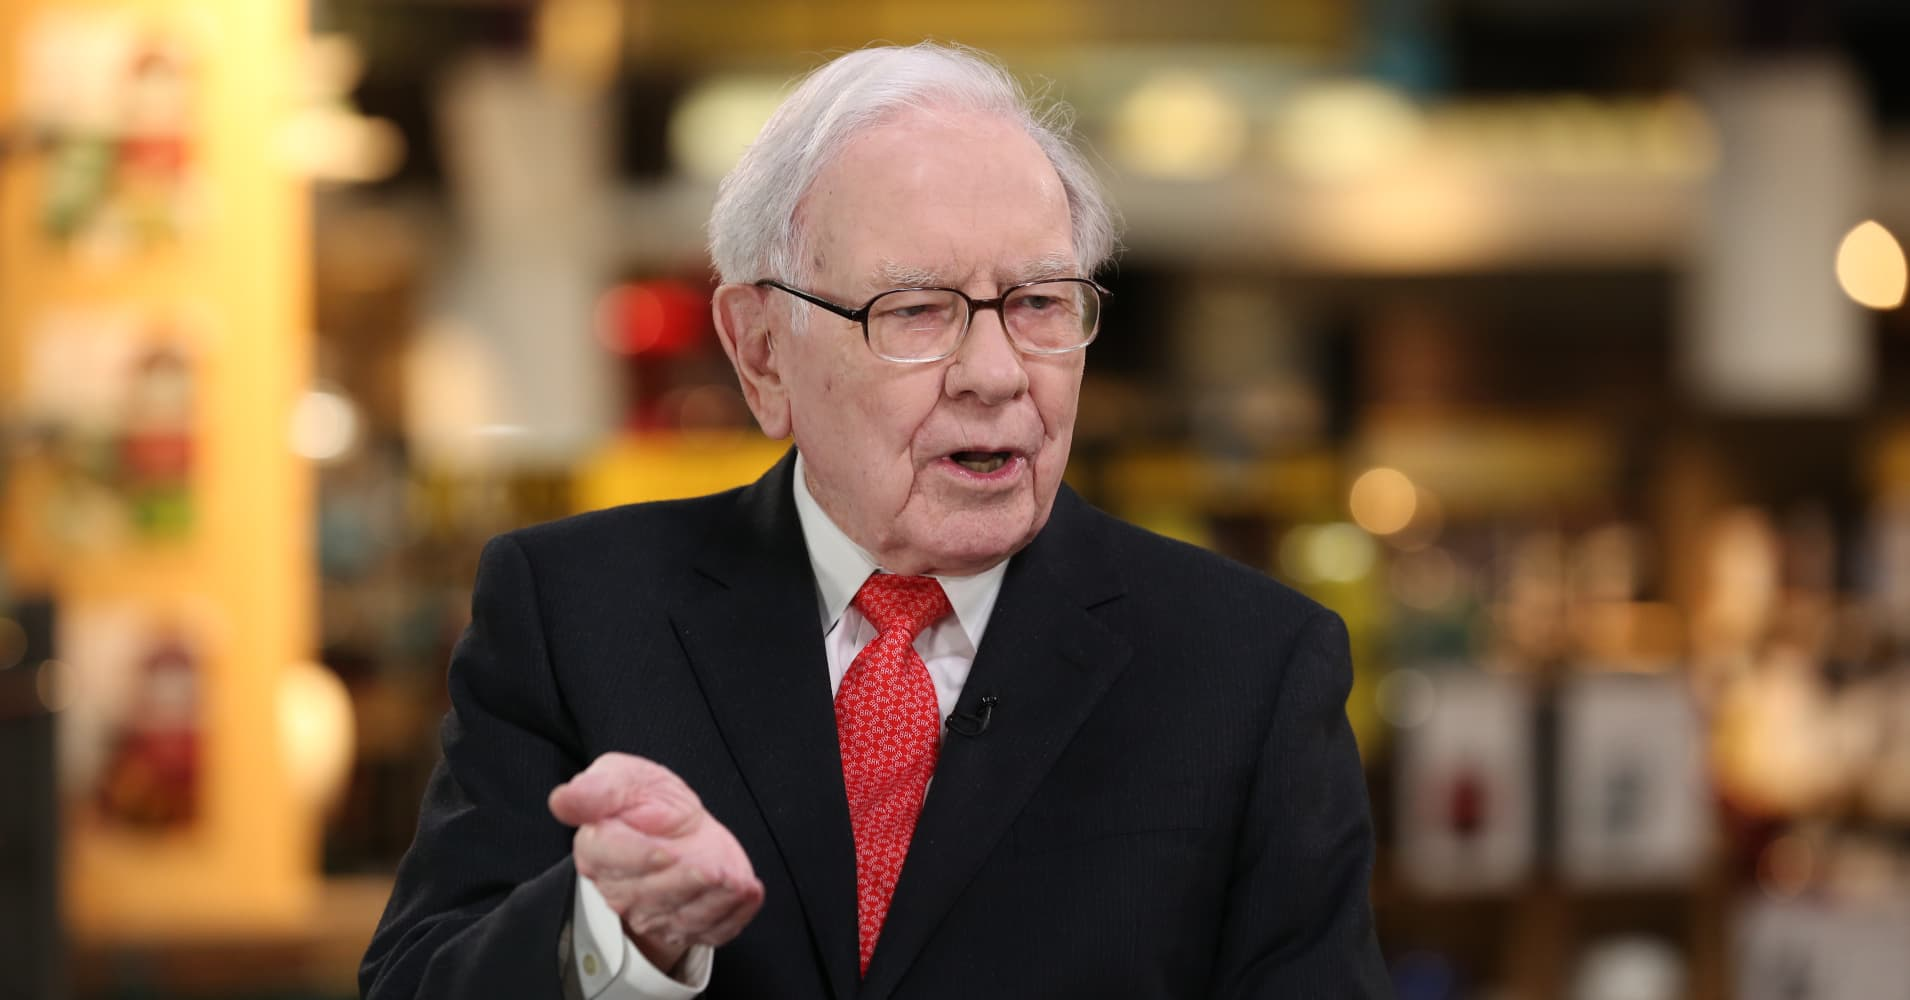 Buffett on the economy: 'It looks like things have slowed down'